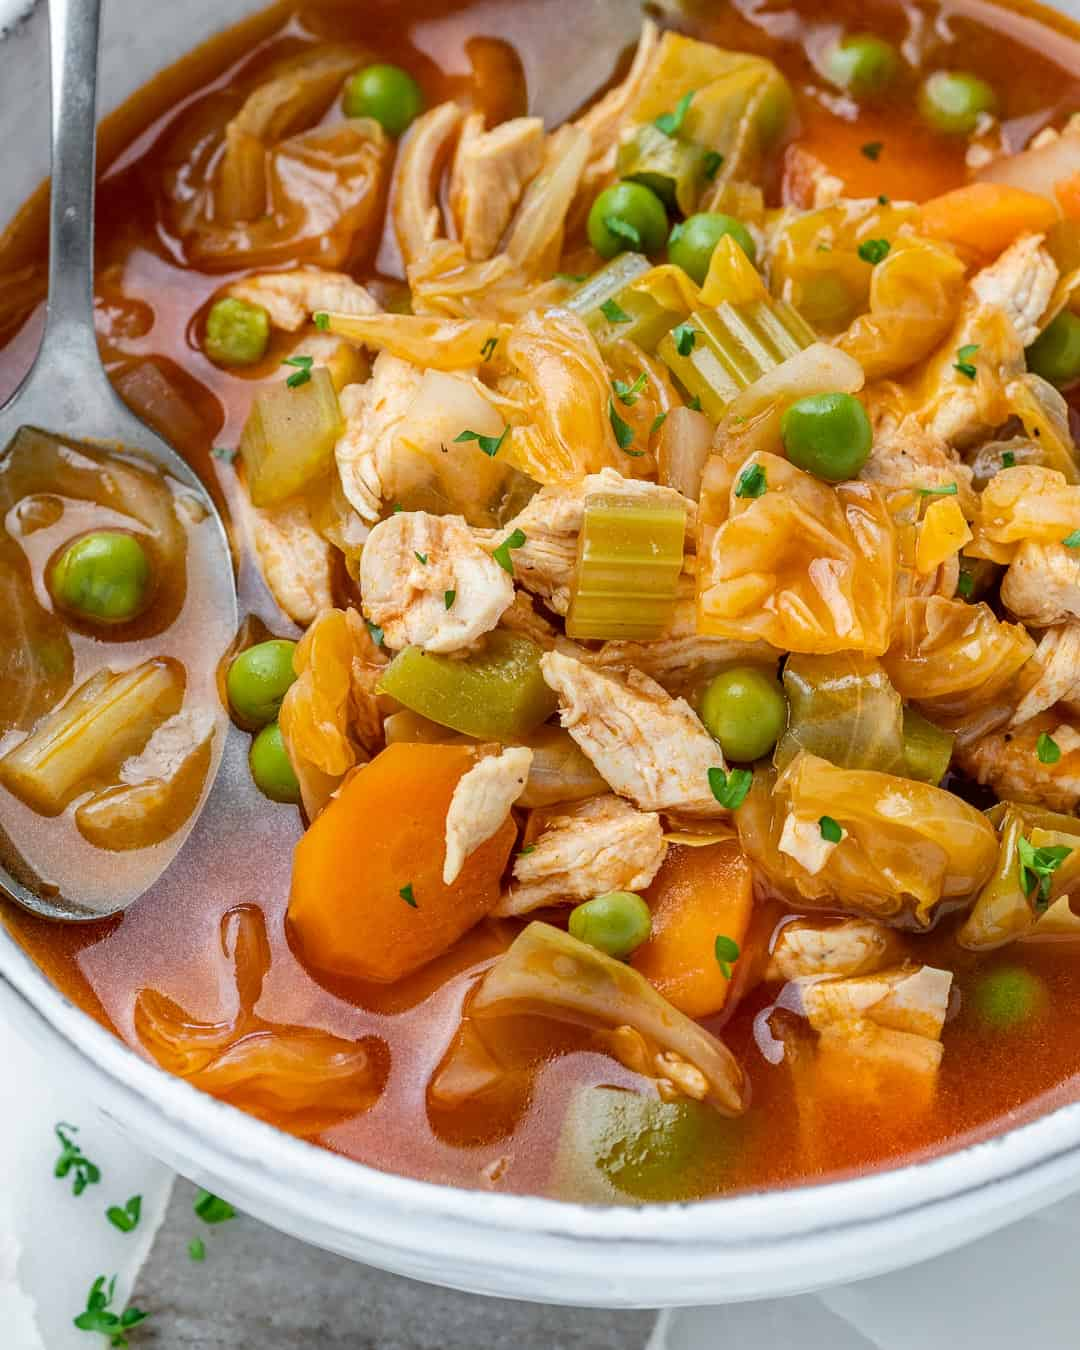 chicken and vegetable soup with cabbage, carrots, and peas